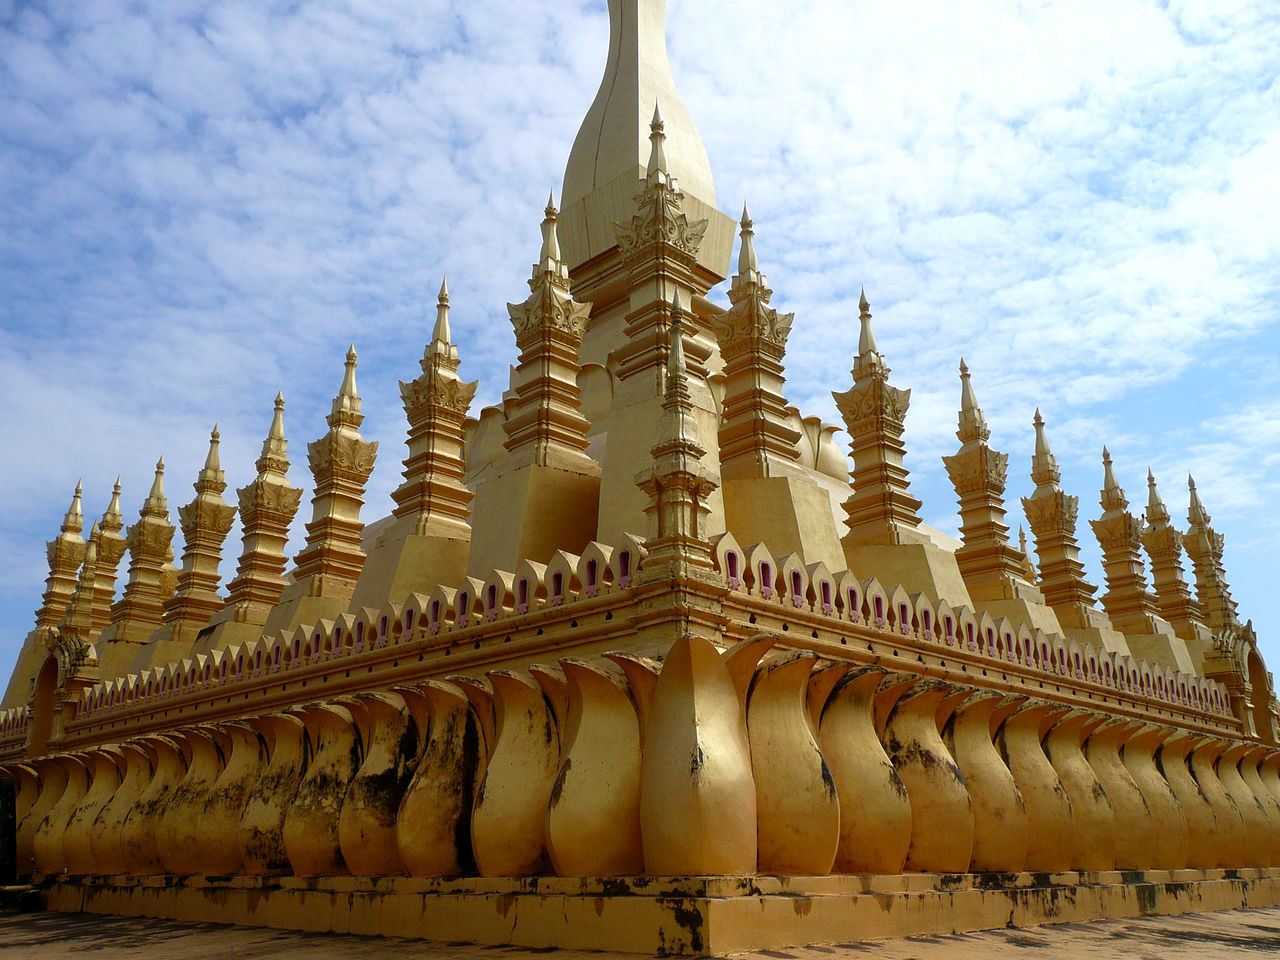 Architecture Business Finance And Industry Cultures Day Gold Gold Colored Golden Temple Landscape Loas No People Outdoors Pagoda Place Of Worship Religion Sky Spirituality Travel